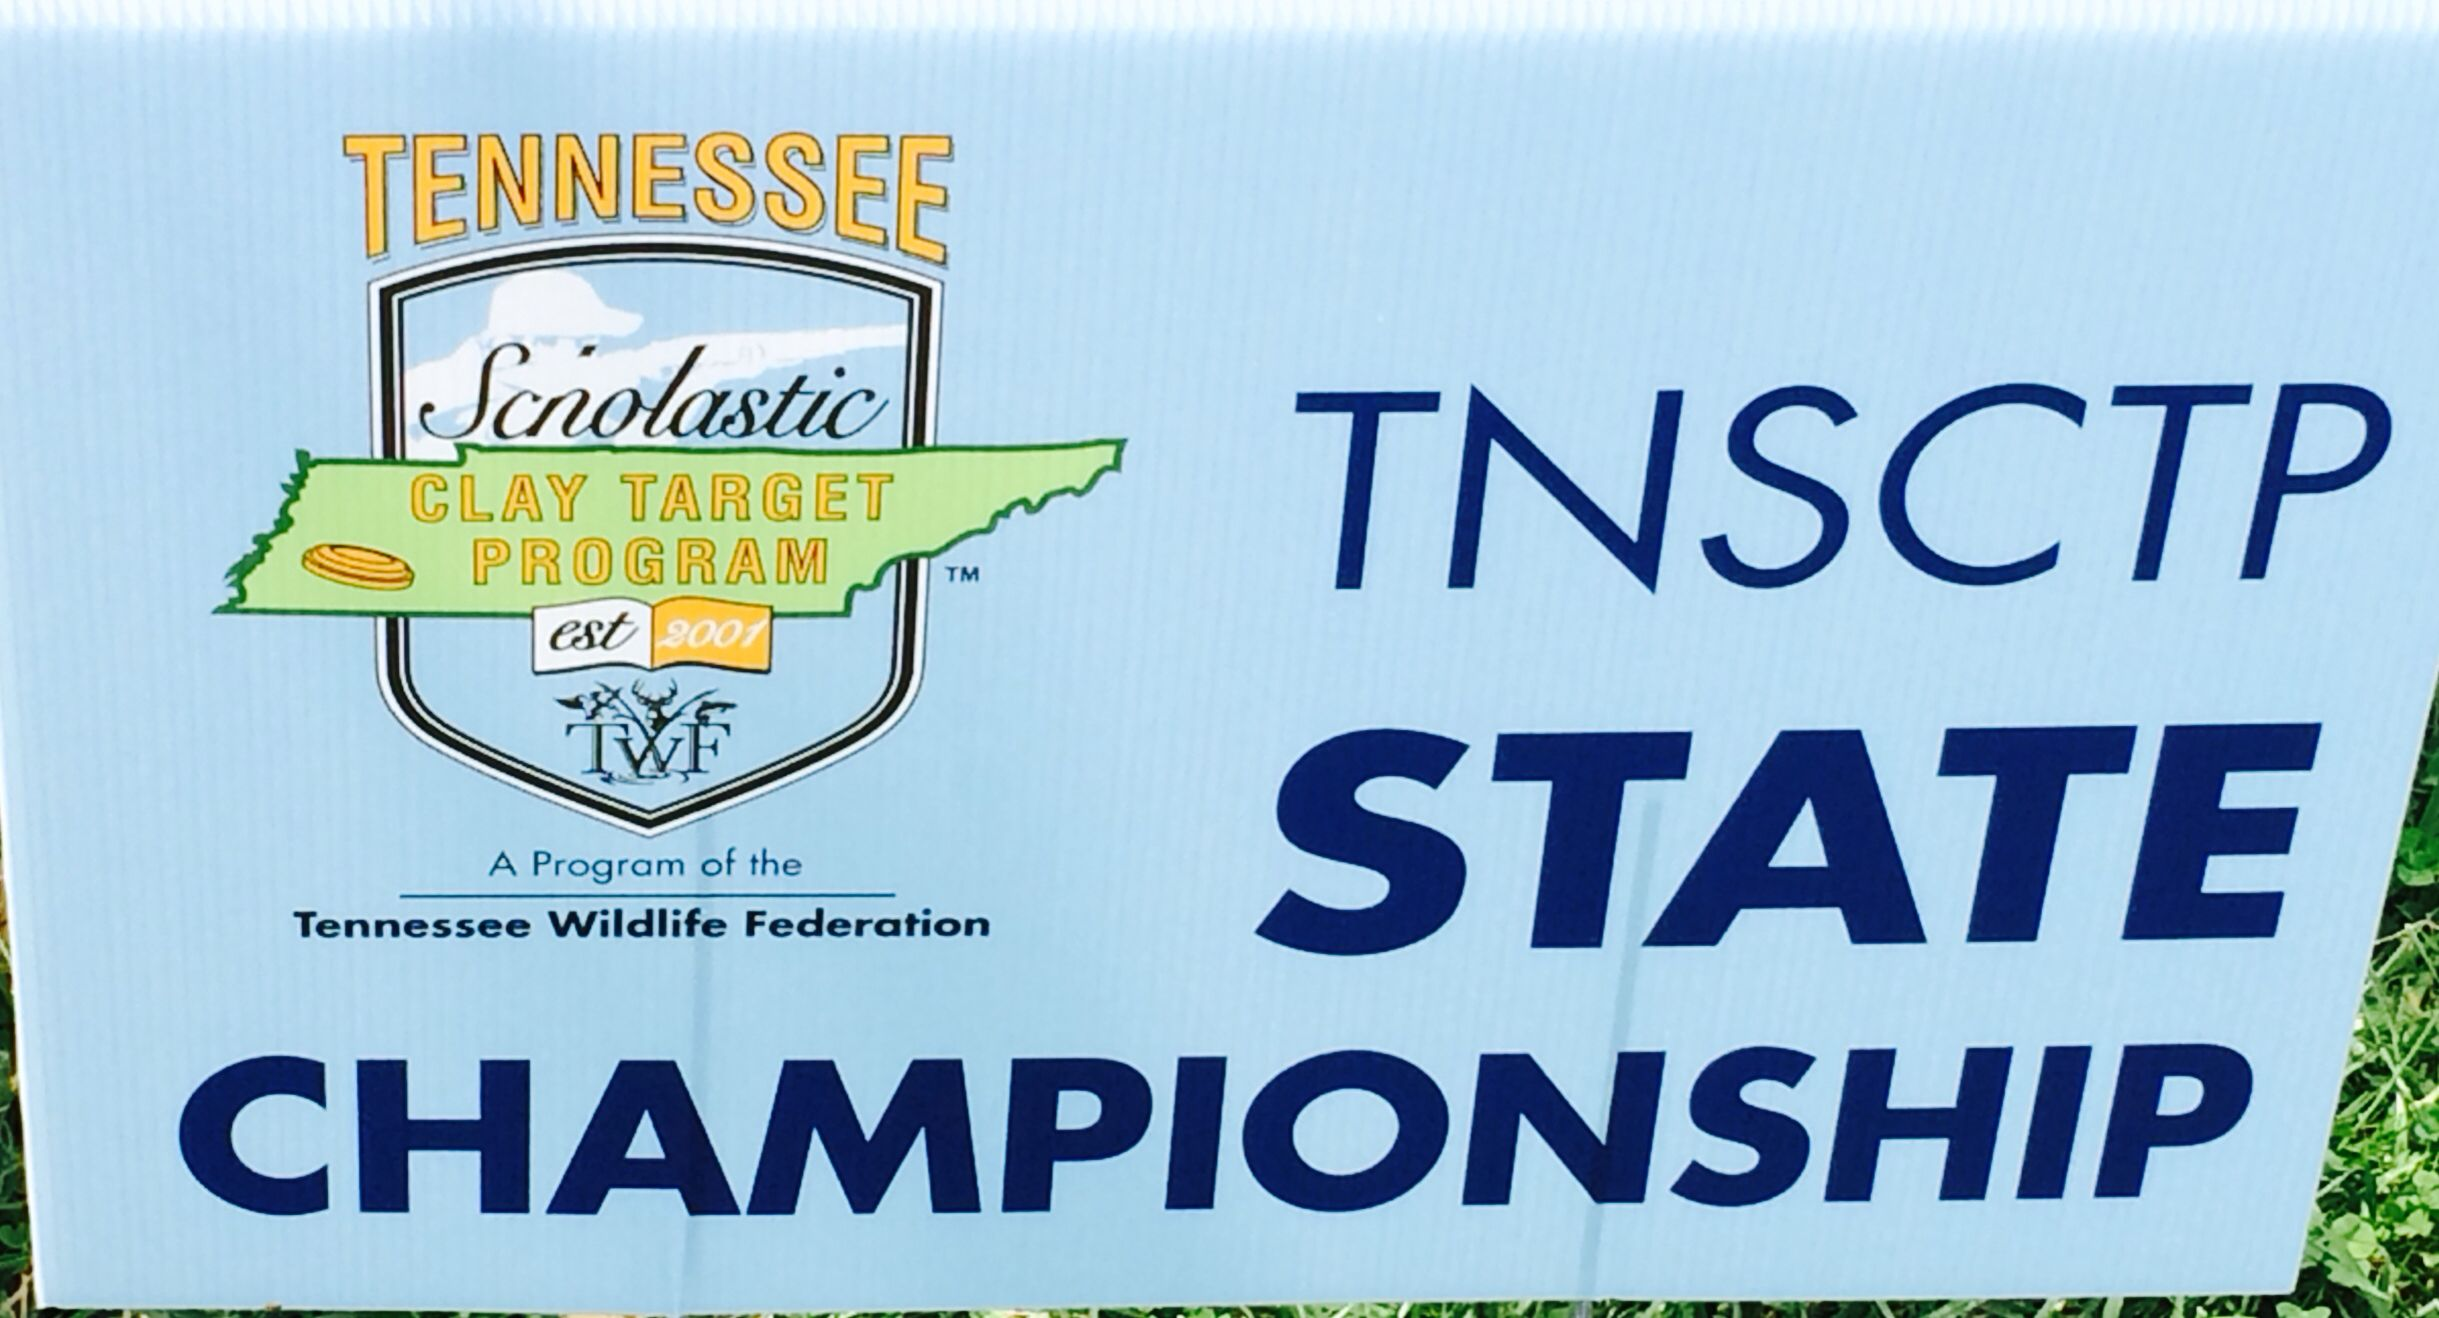 Tennessee State Competition